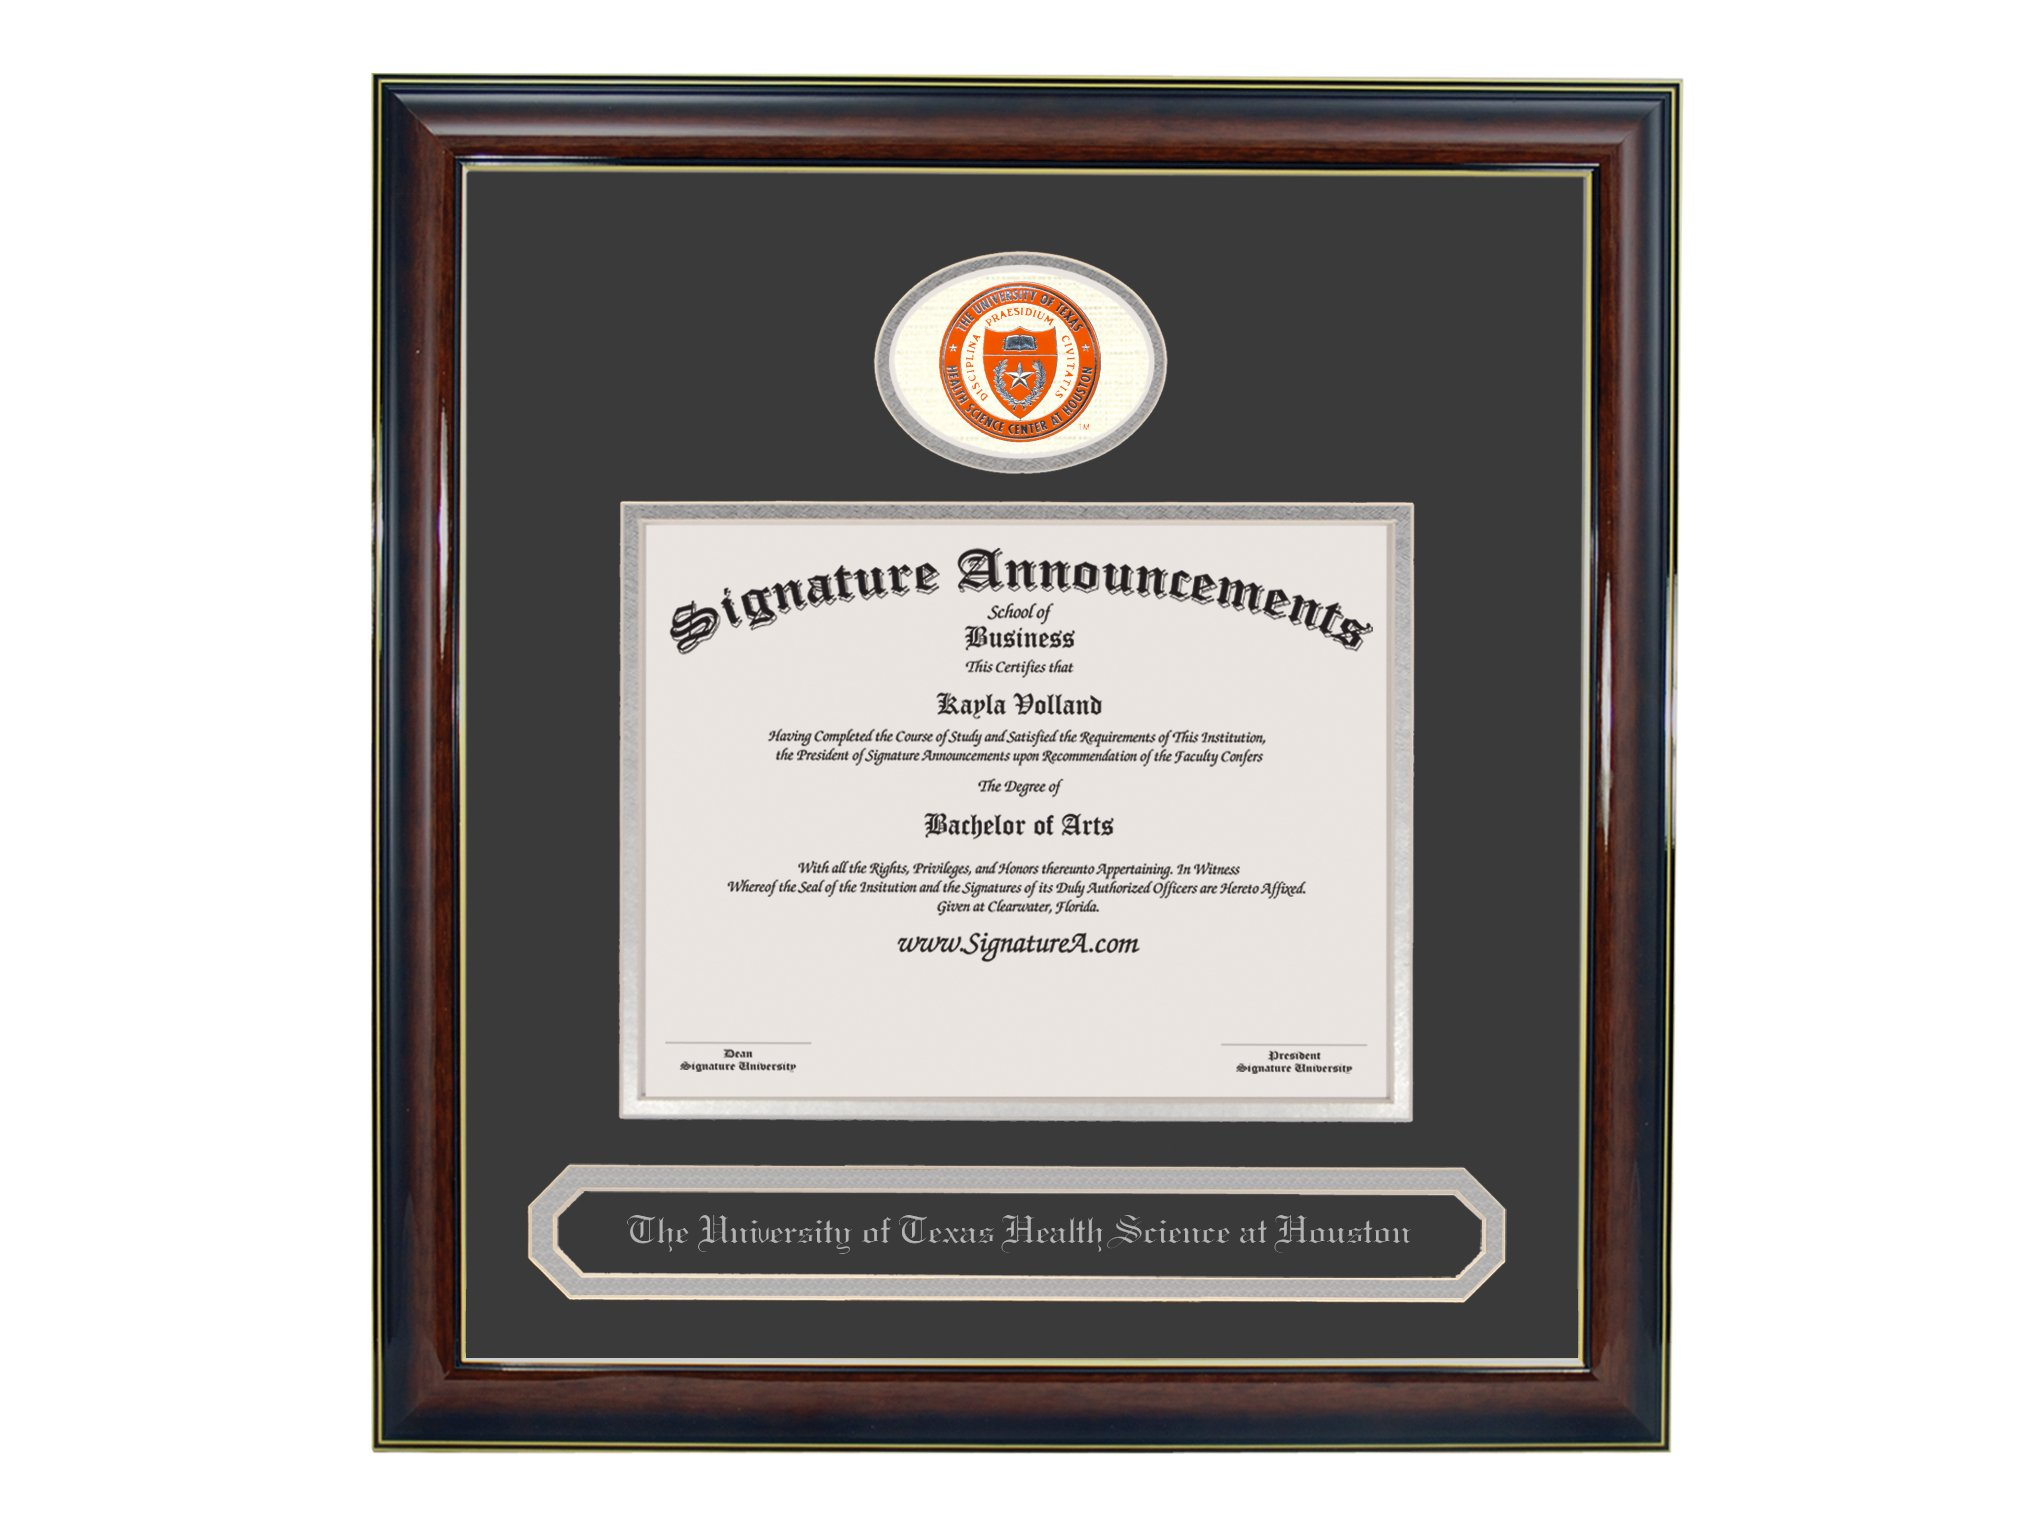 Signature Announcements University-of-Texas-Health-Science-Center-At-Houston Undergraduate, Graduate Sculpted Foil Seal & Name Diploma Frame, 20'' x 20'', Gloss Mahogany with Gold Accent